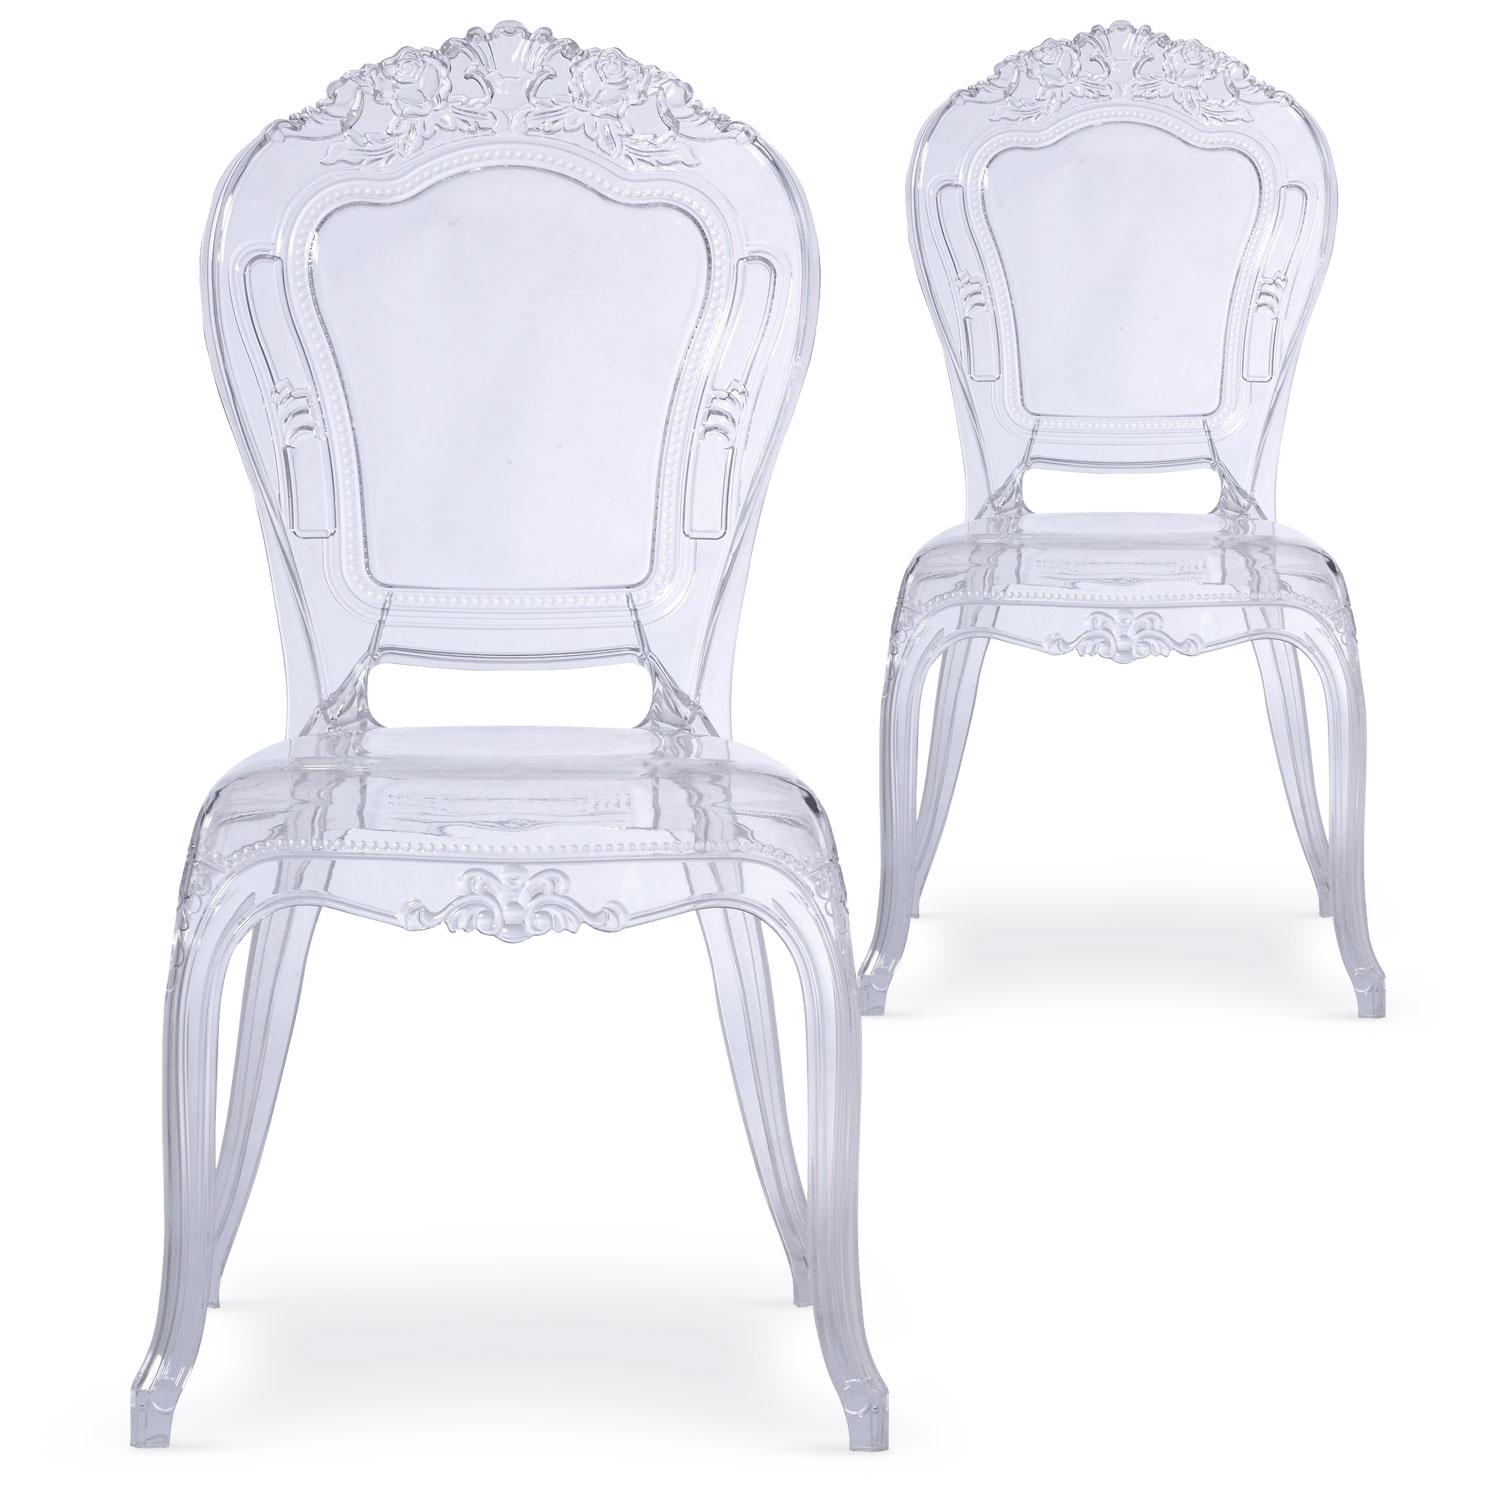 Chaise plexi transparent king lot de 2 - Chaise plexiglass transparente ...